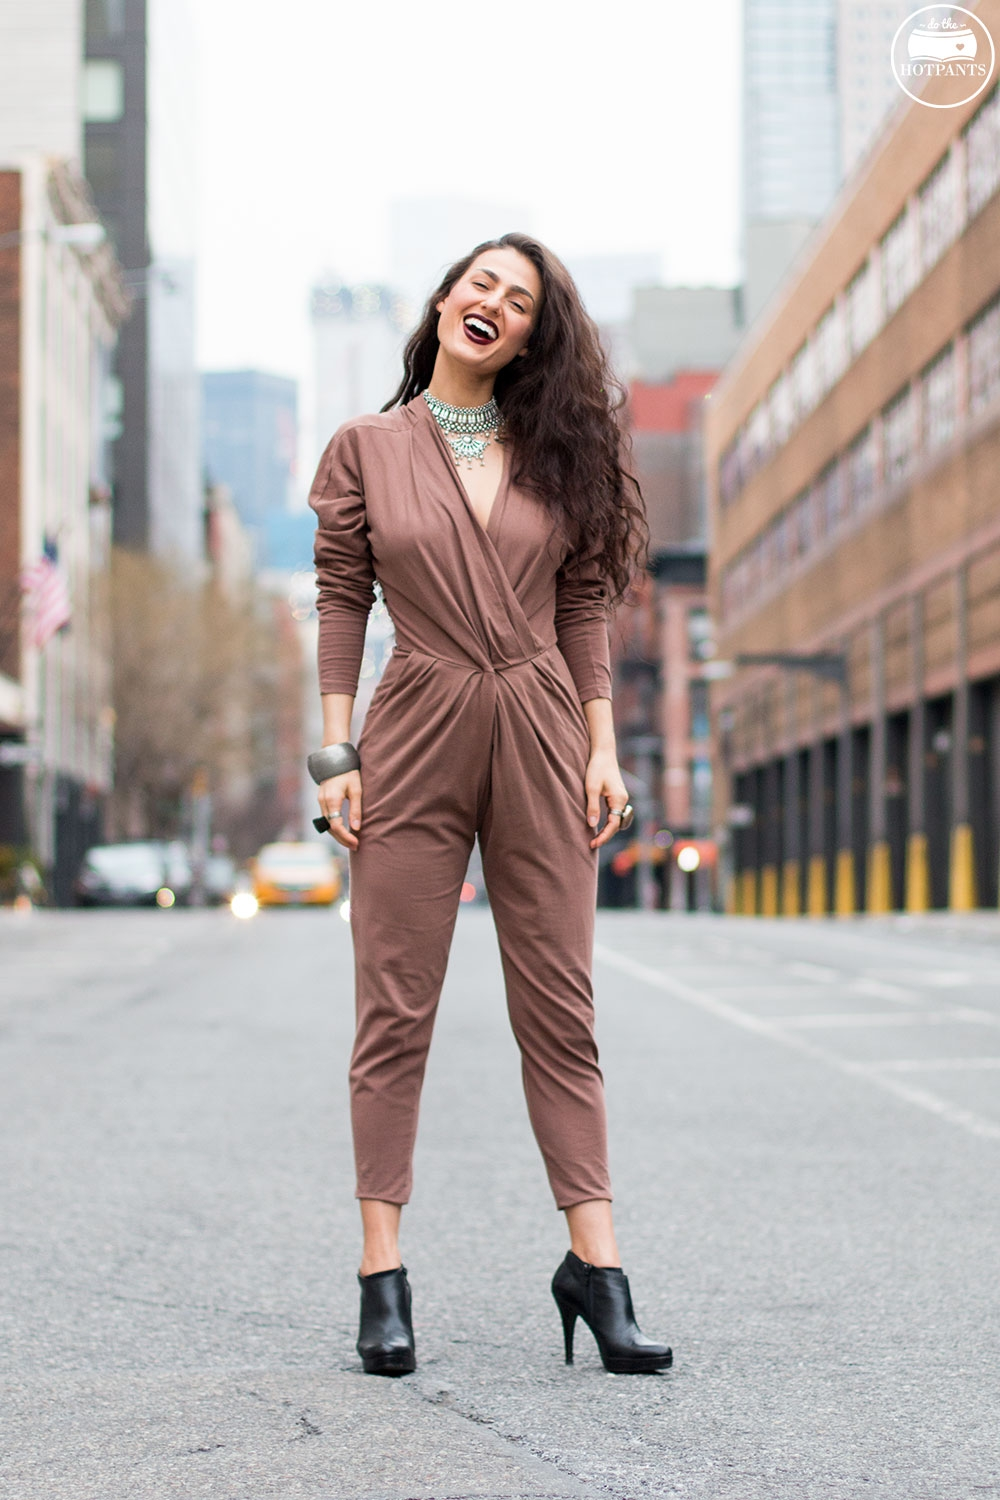 Do The Hotpants Dana Suchow Curvy Woman Jumpsuit Nude Outfit Winter Fashion Long Wavy Hair Dark Lipstick IMG_7183